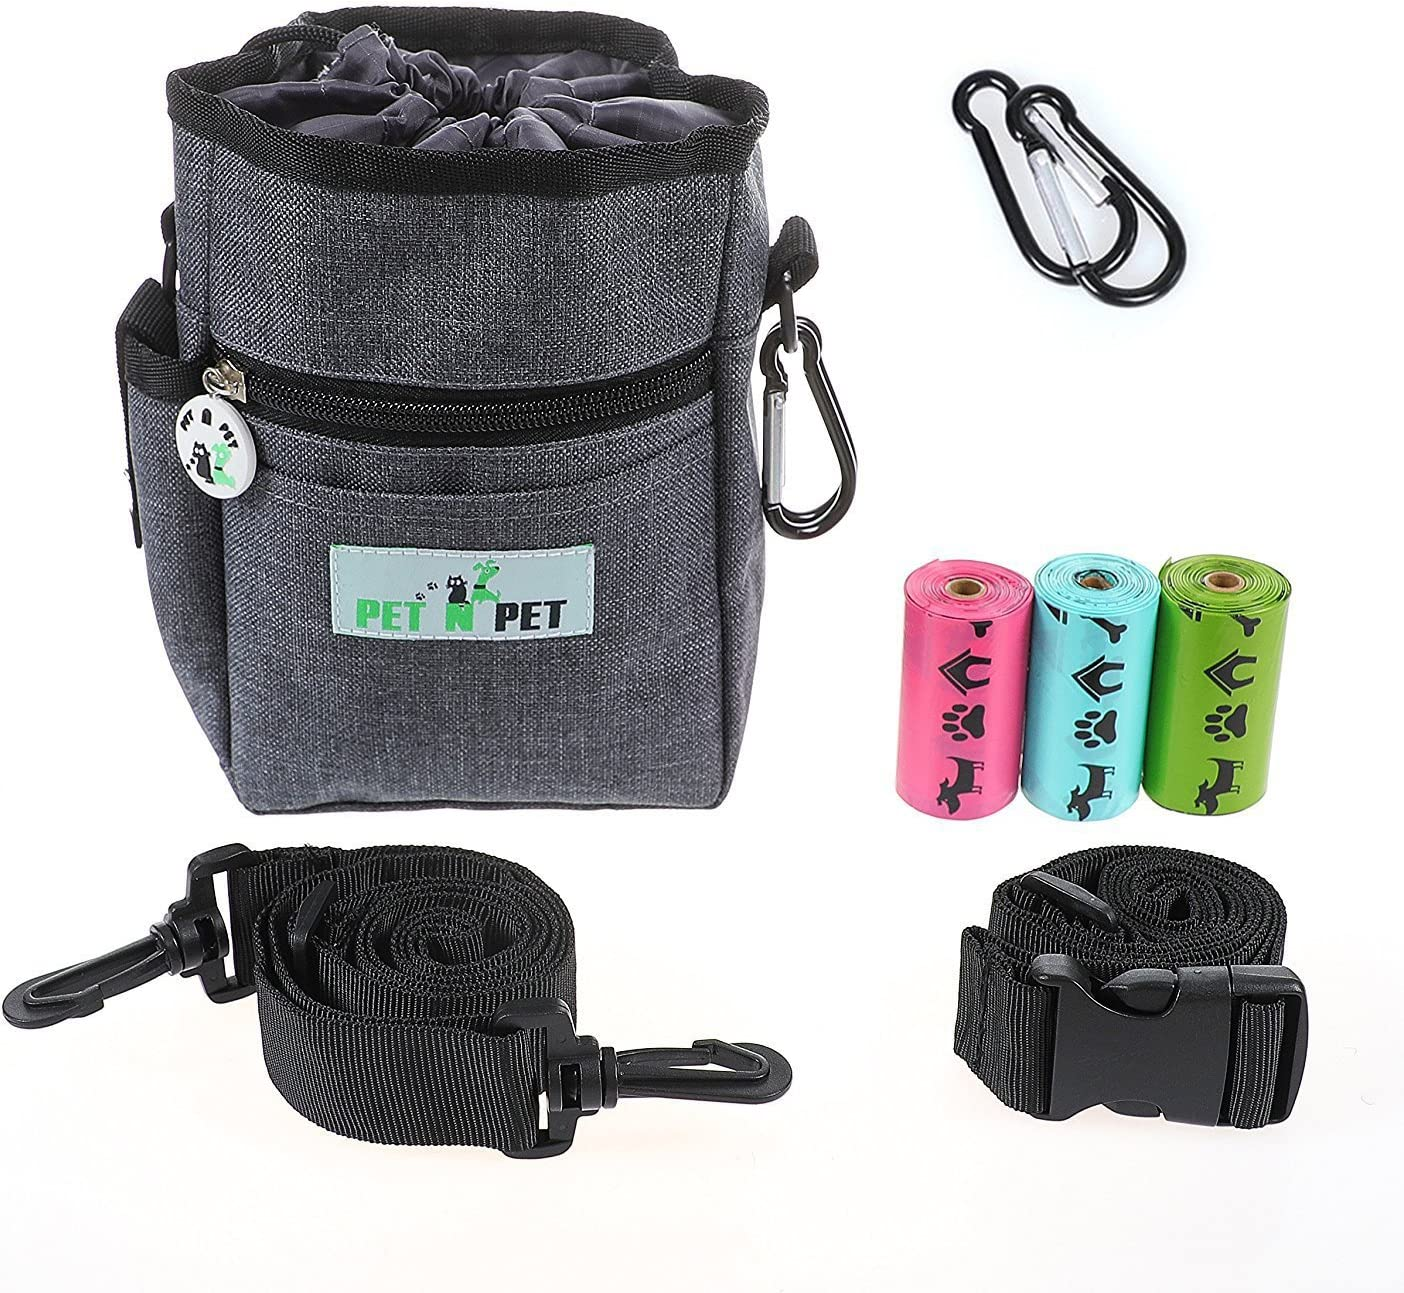 purse for bags for dogs Dispenser for bags for dogs dispenser for dogs for treats holder bags for dogs hanger for bags for dogs